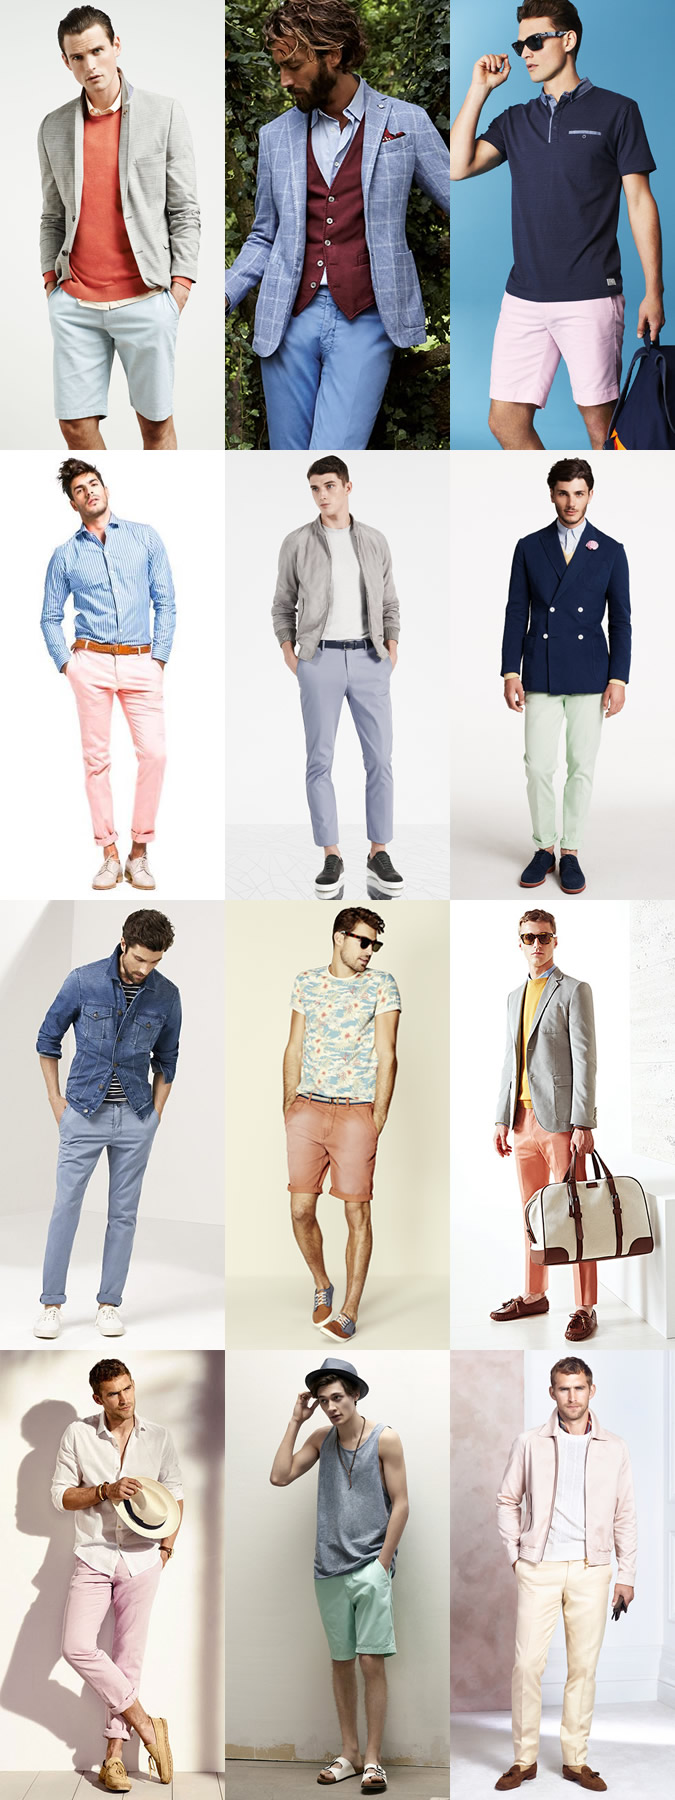 Pastel Colors and Light Colors look great on  Lighter Complexions.